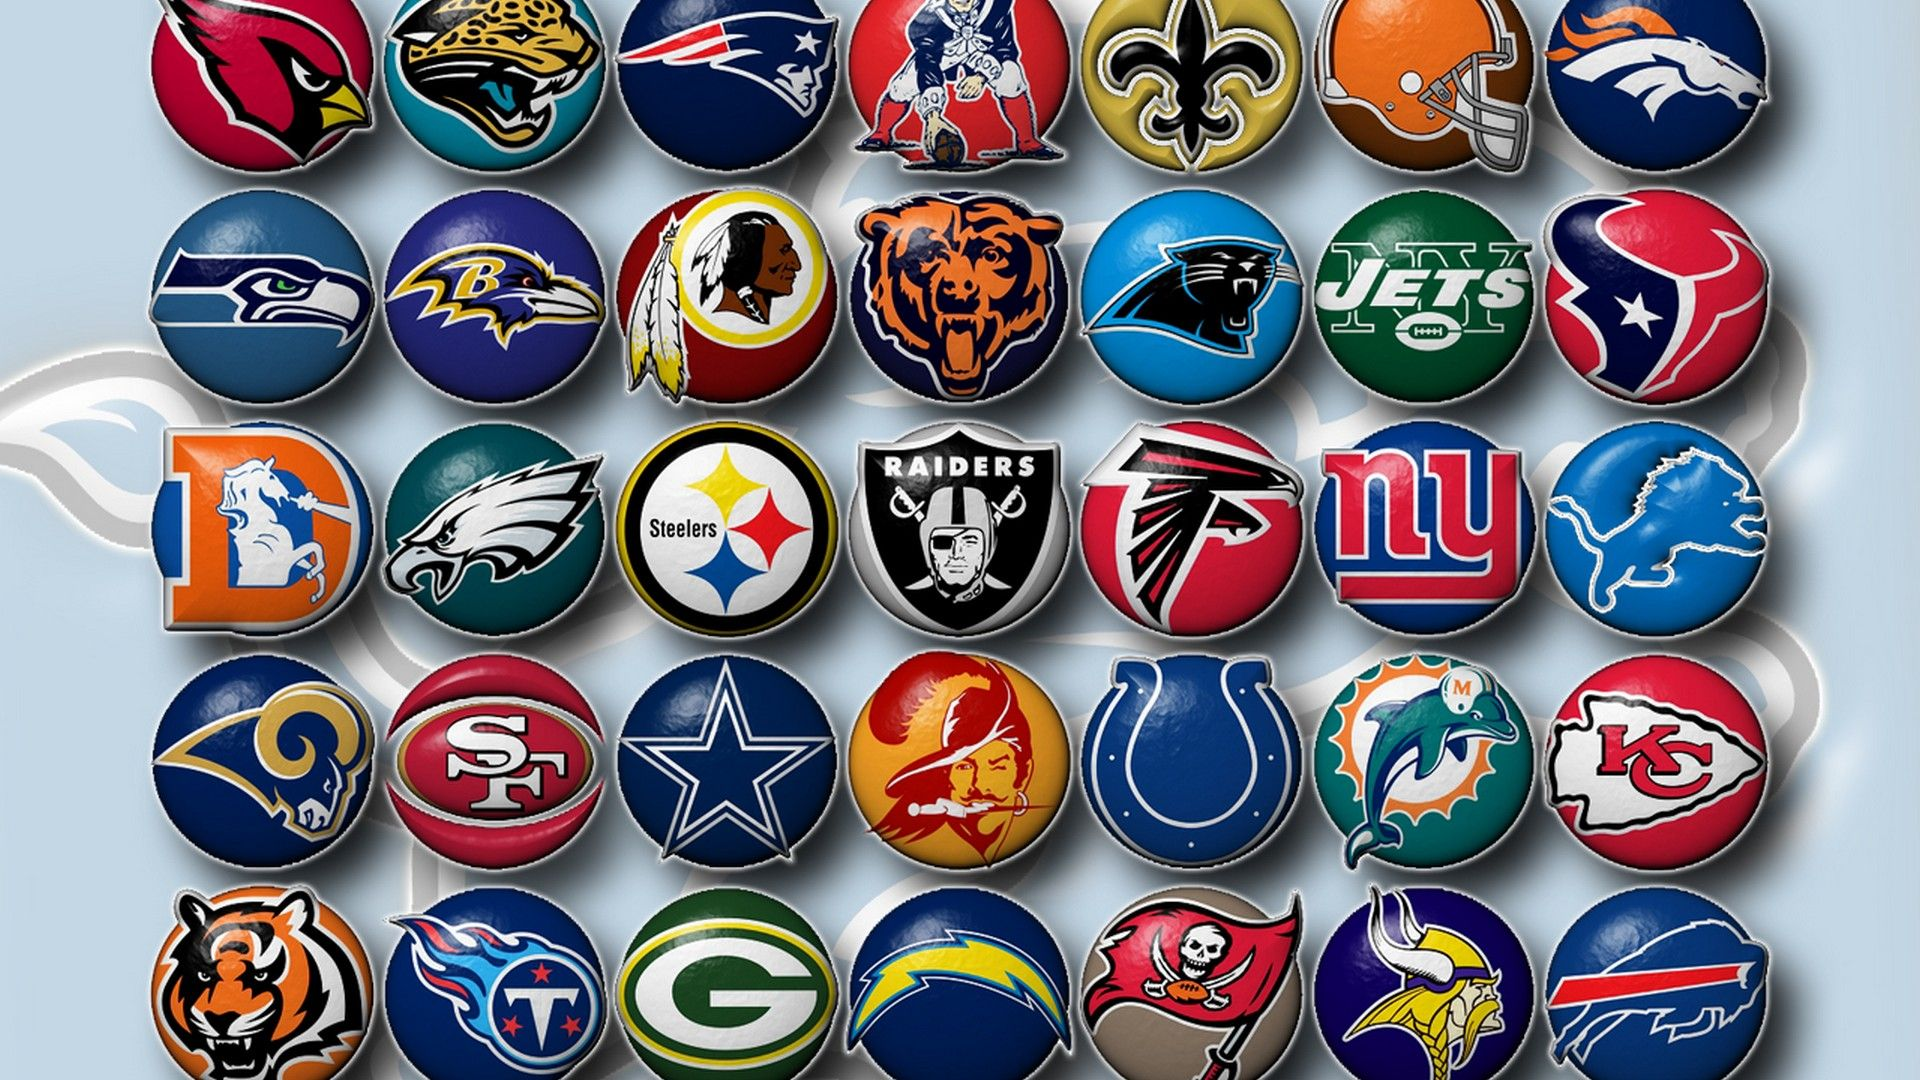 Nfl For Pc Wallpaper 2020 Nfl Football Wallpapers Nfl Teams Logos Nfl Uniforms Nfl Football Teams